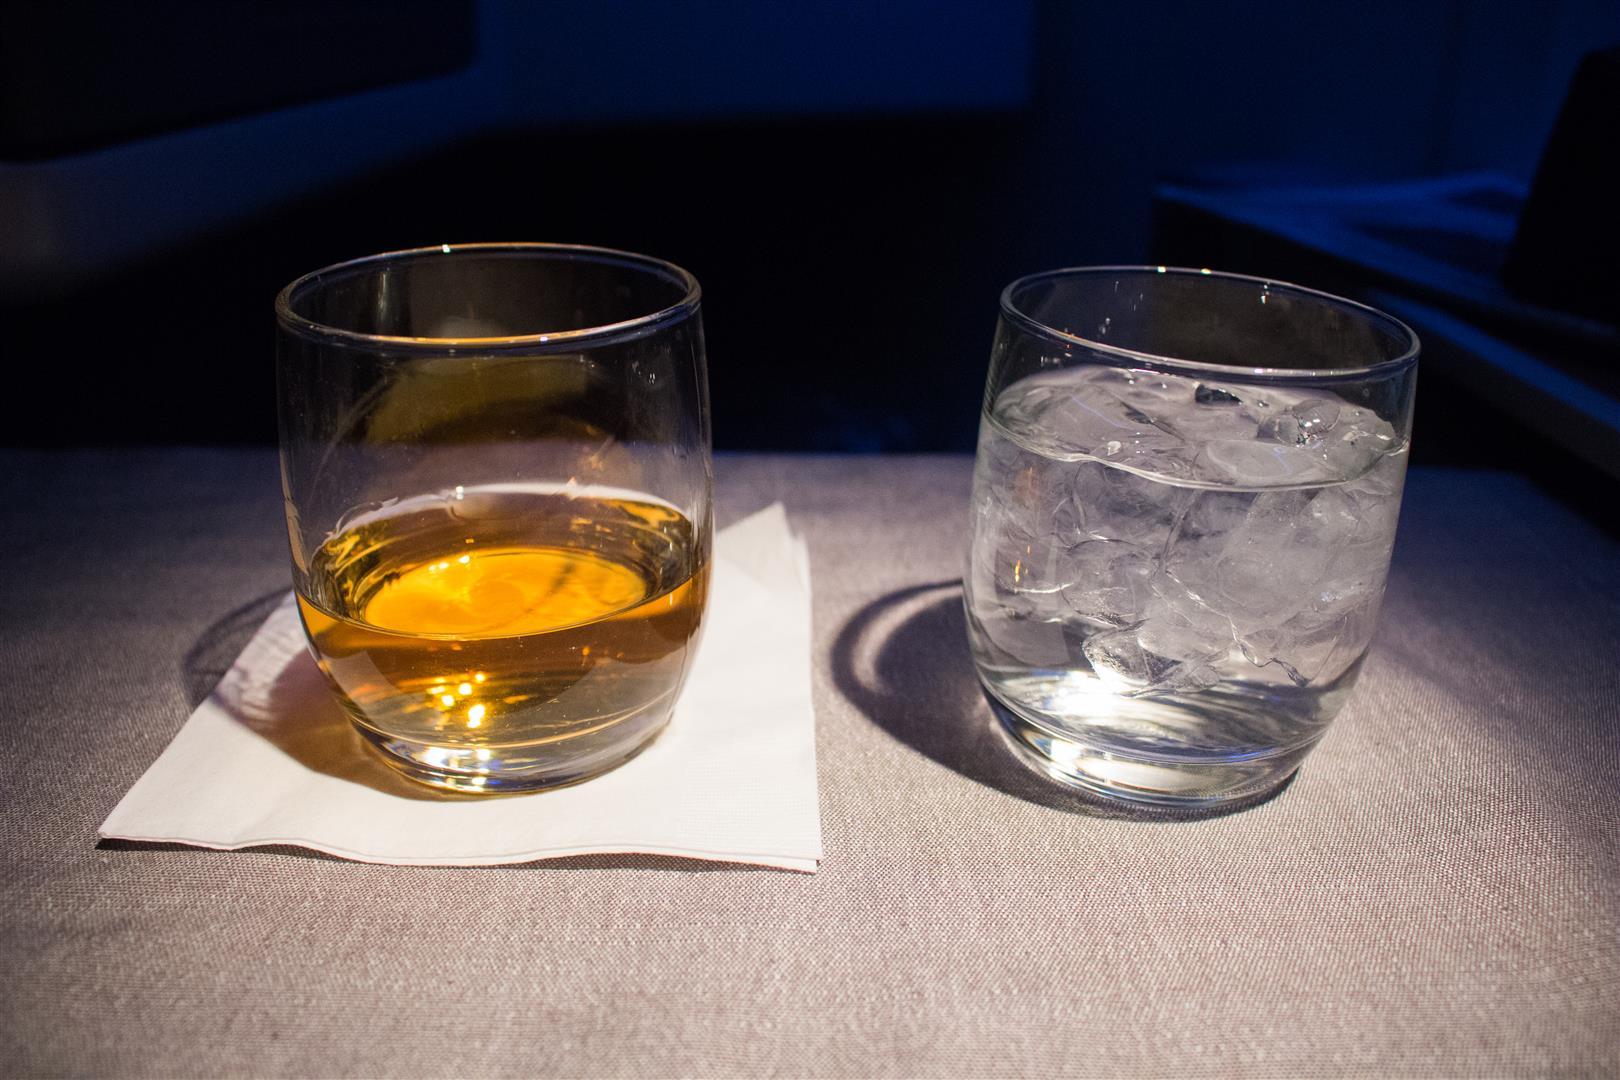 I'm glad the stewardess offered some ice water with my generous serving of whiskey - sometimes, it is better with a bit of water!